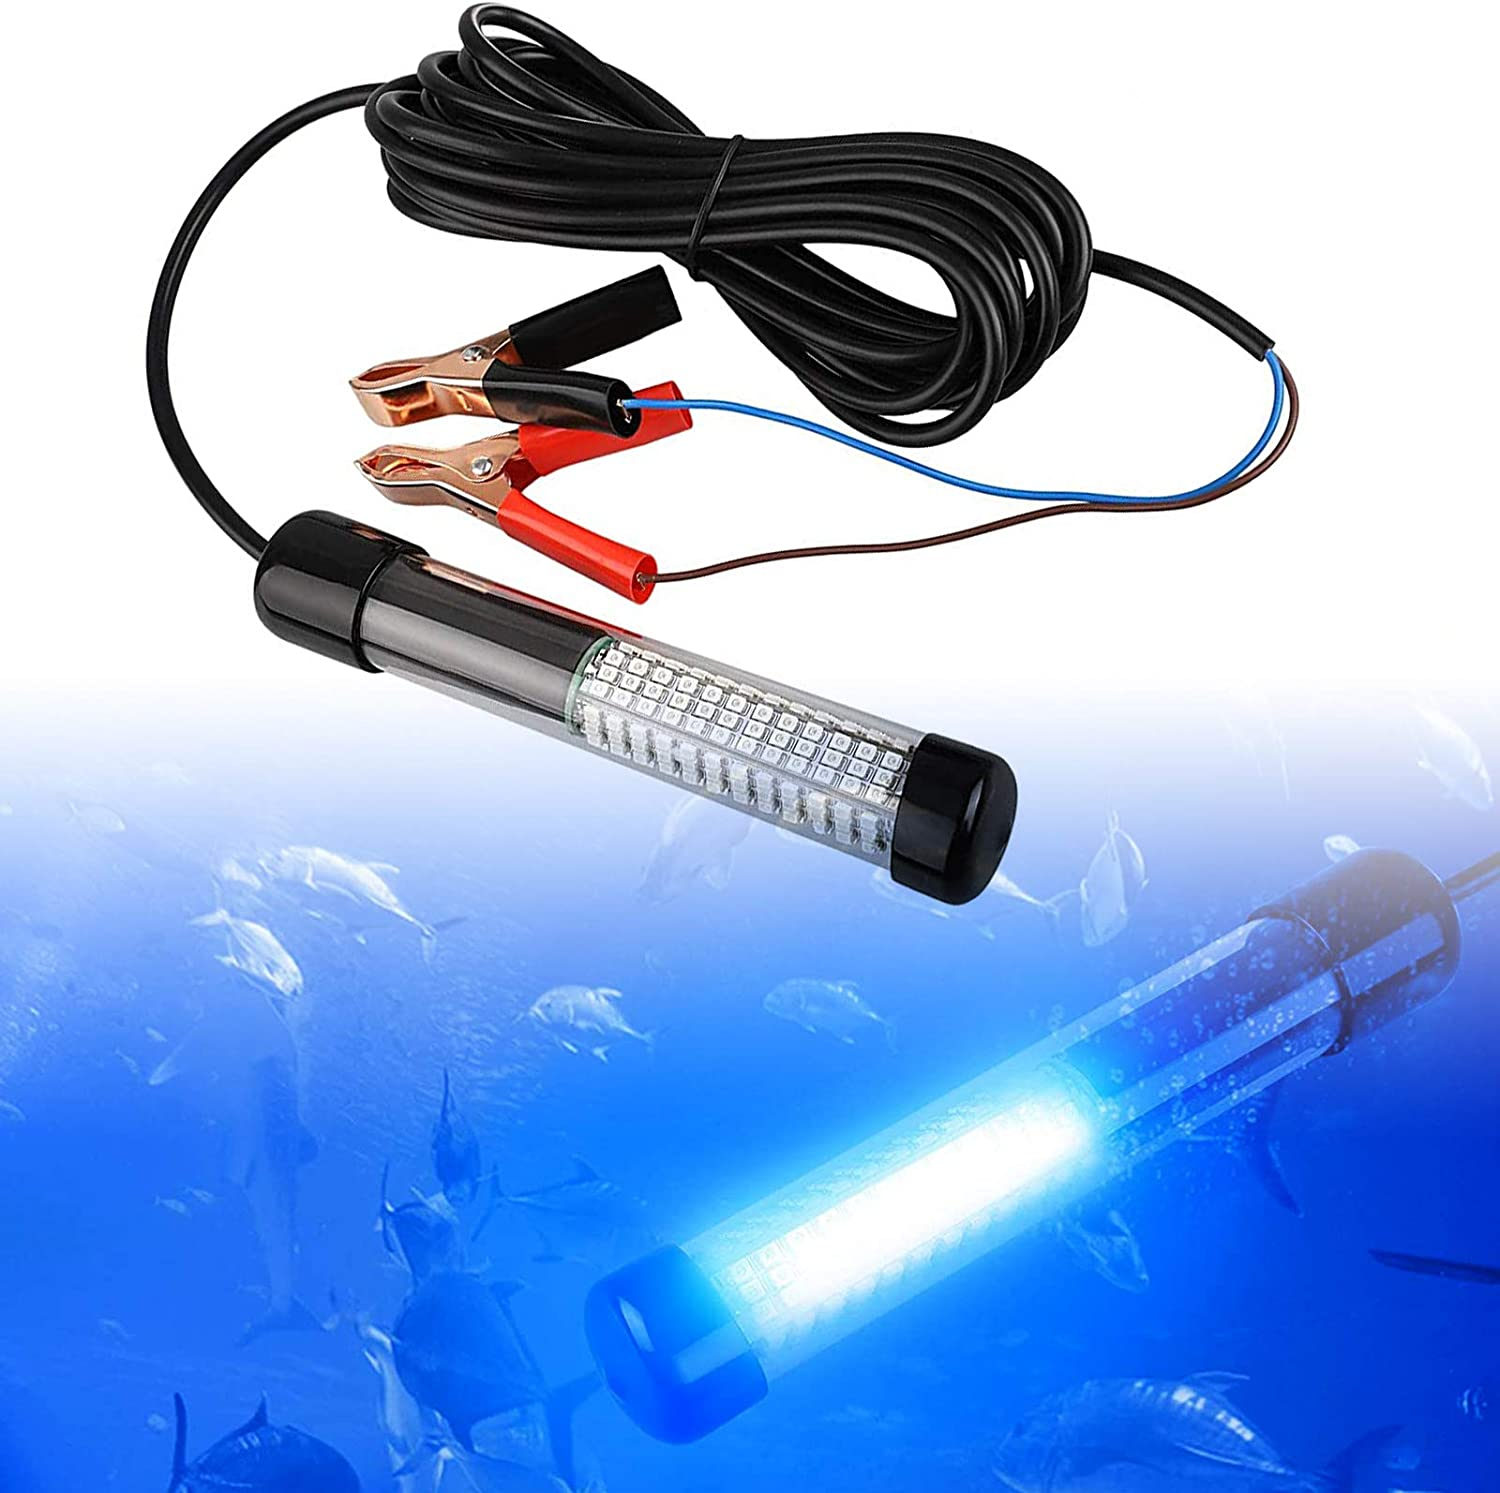 12V 180 LED BLUE UNDERWATER SUBMERSIBLE NIGHT FISHING LIGHT WITH 6M POWER CORD